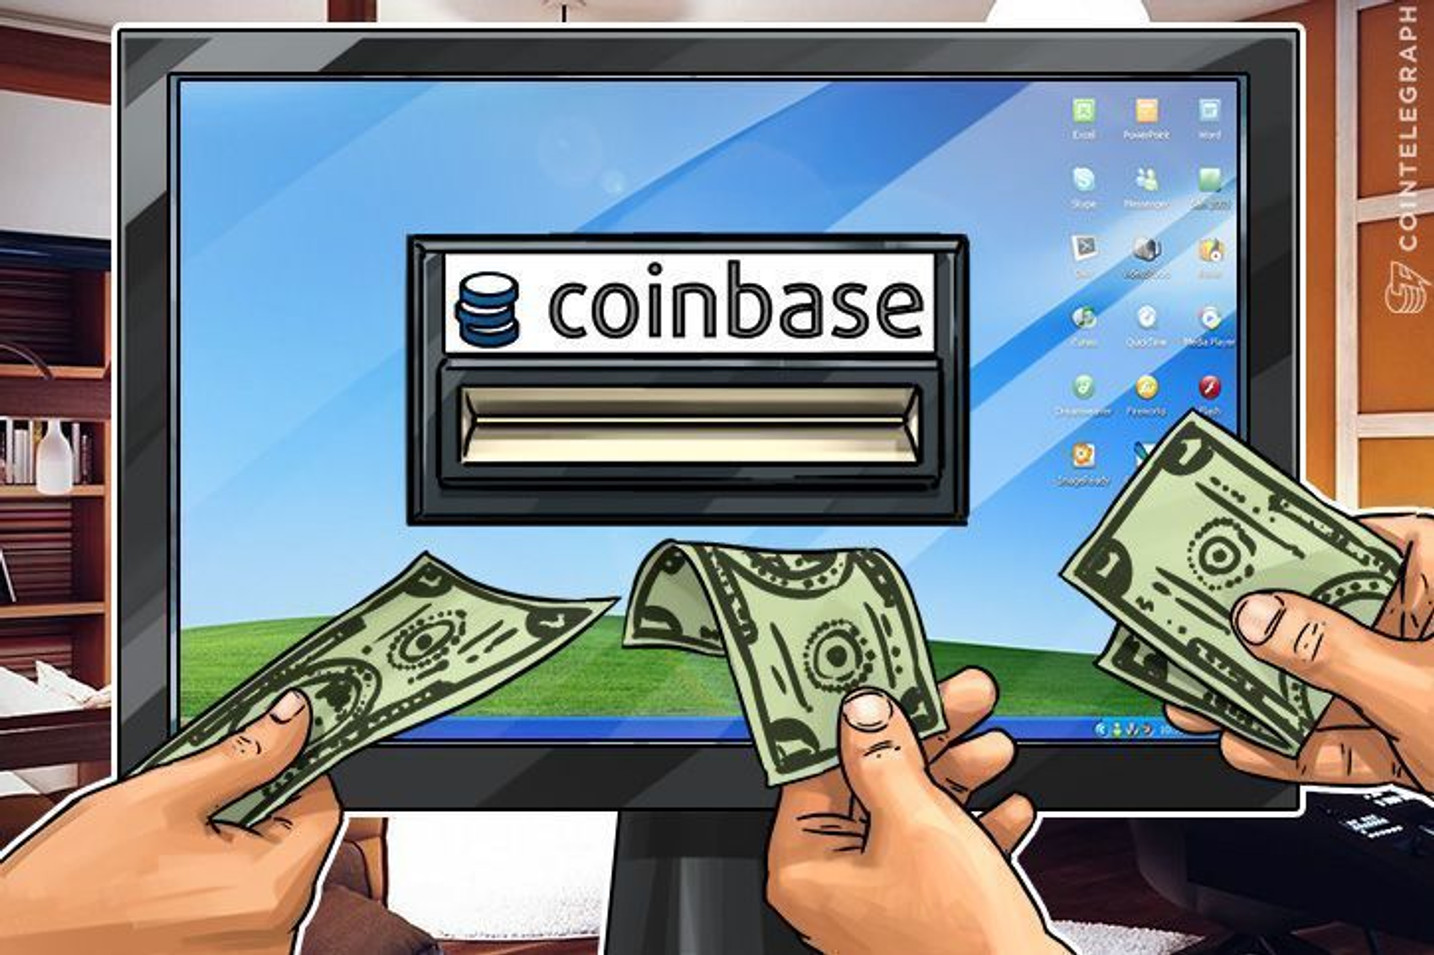 Accidental Charges Lead To Coinbase Users Losing Thousands Of Dollars, Refunds Promised